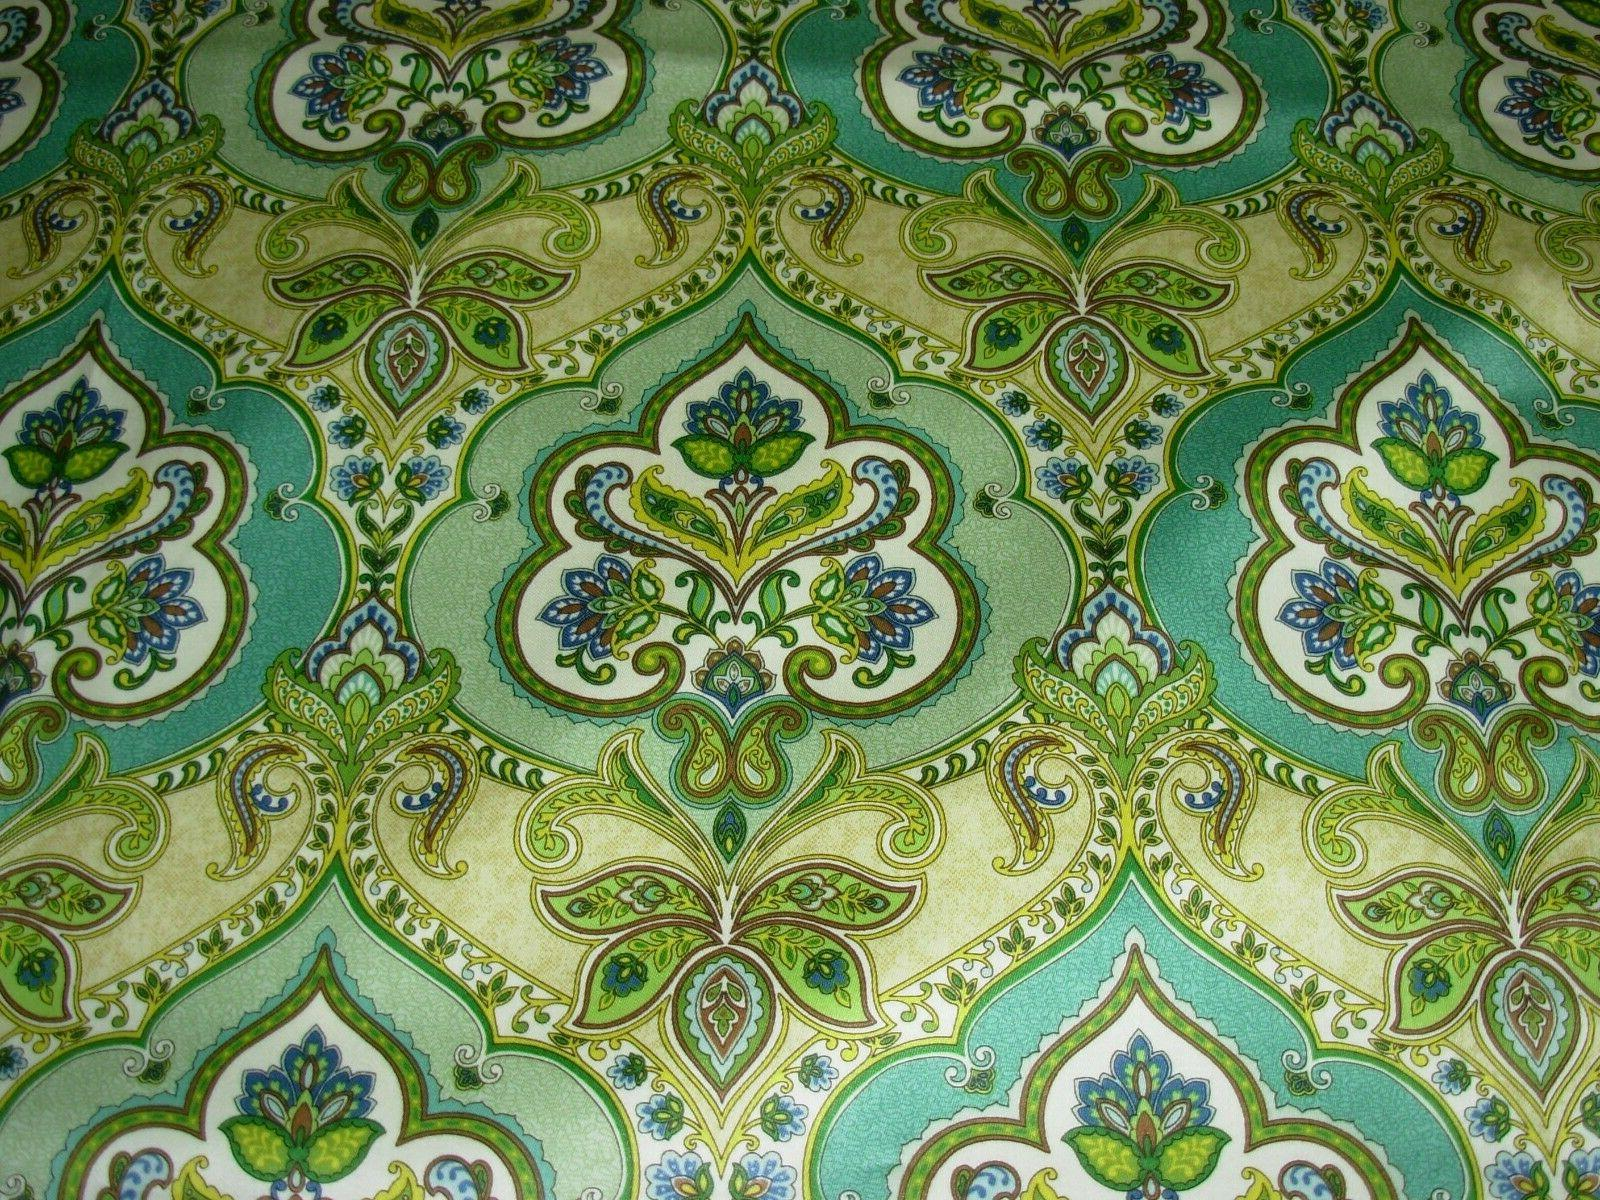 18 5 8 yds lily pad cotton